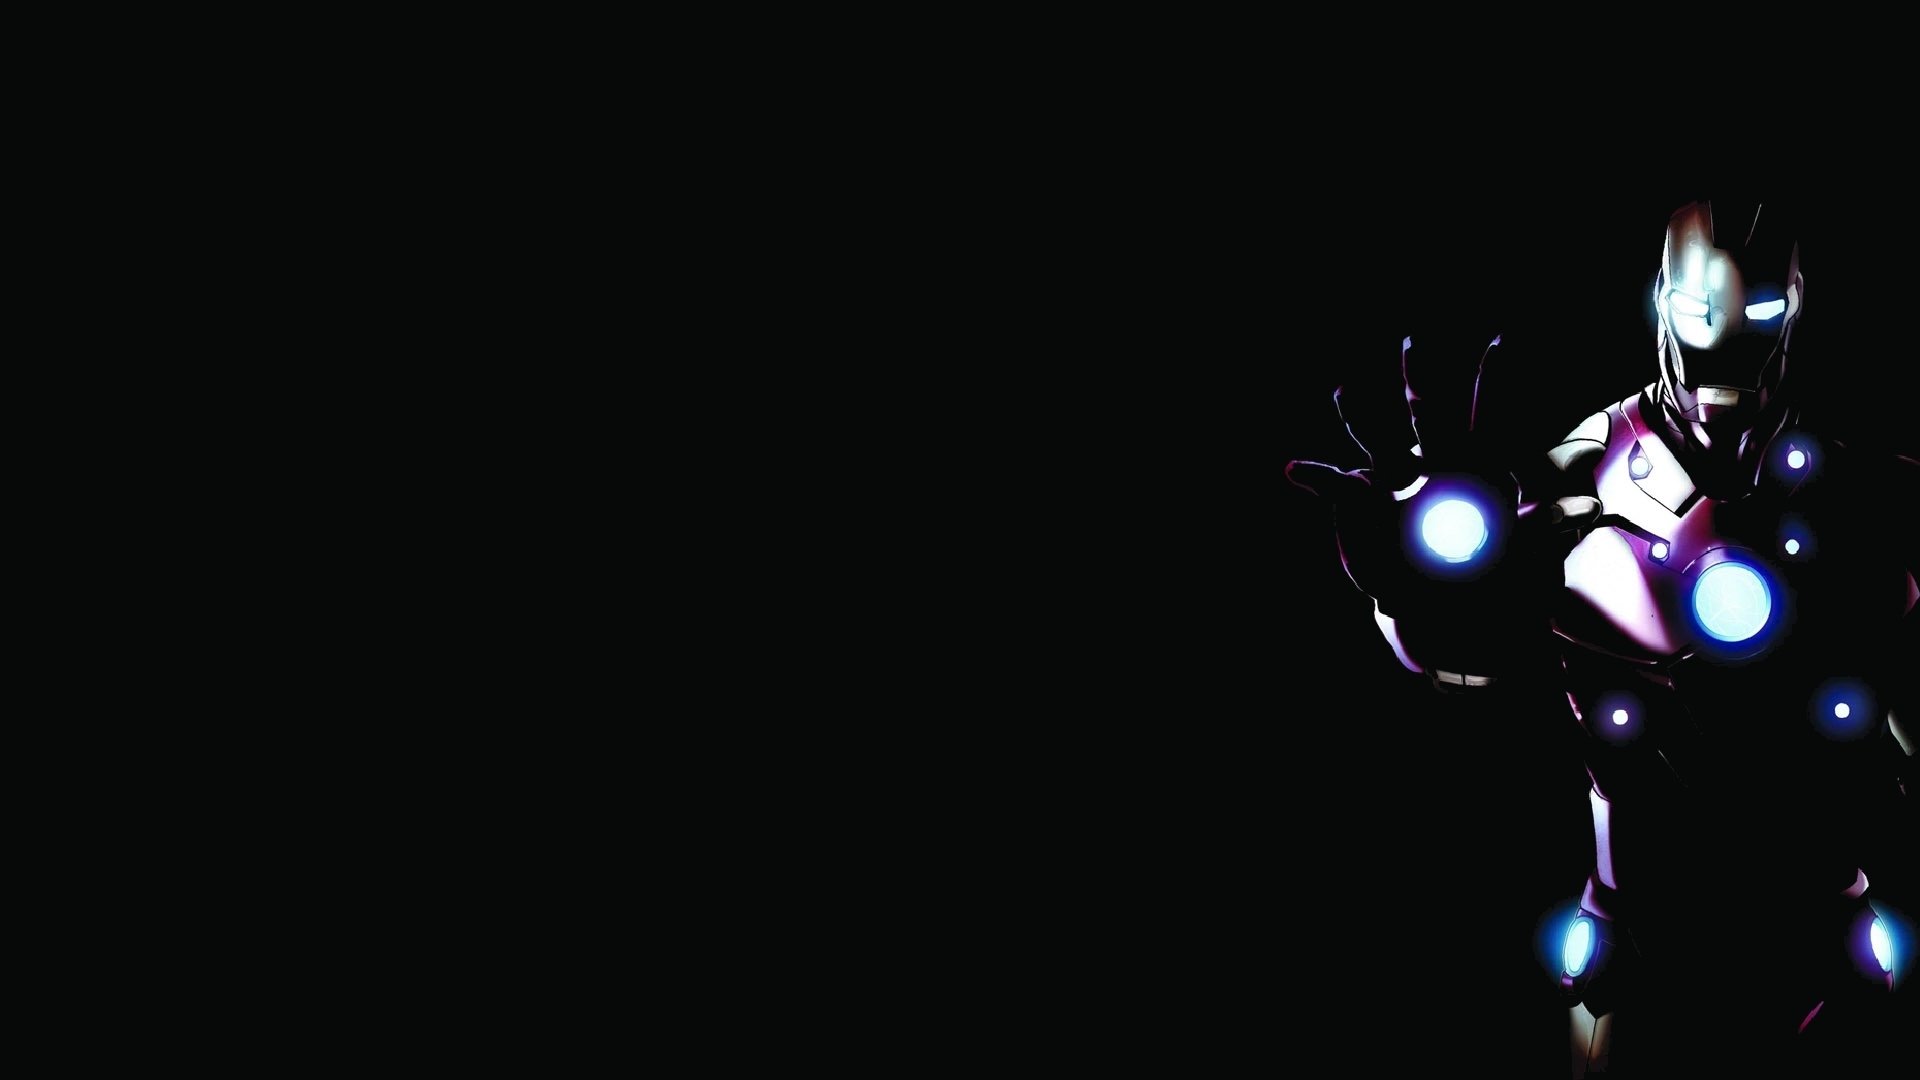 iron man full hd wallpaper and background image | 1920x1080 | id:480470